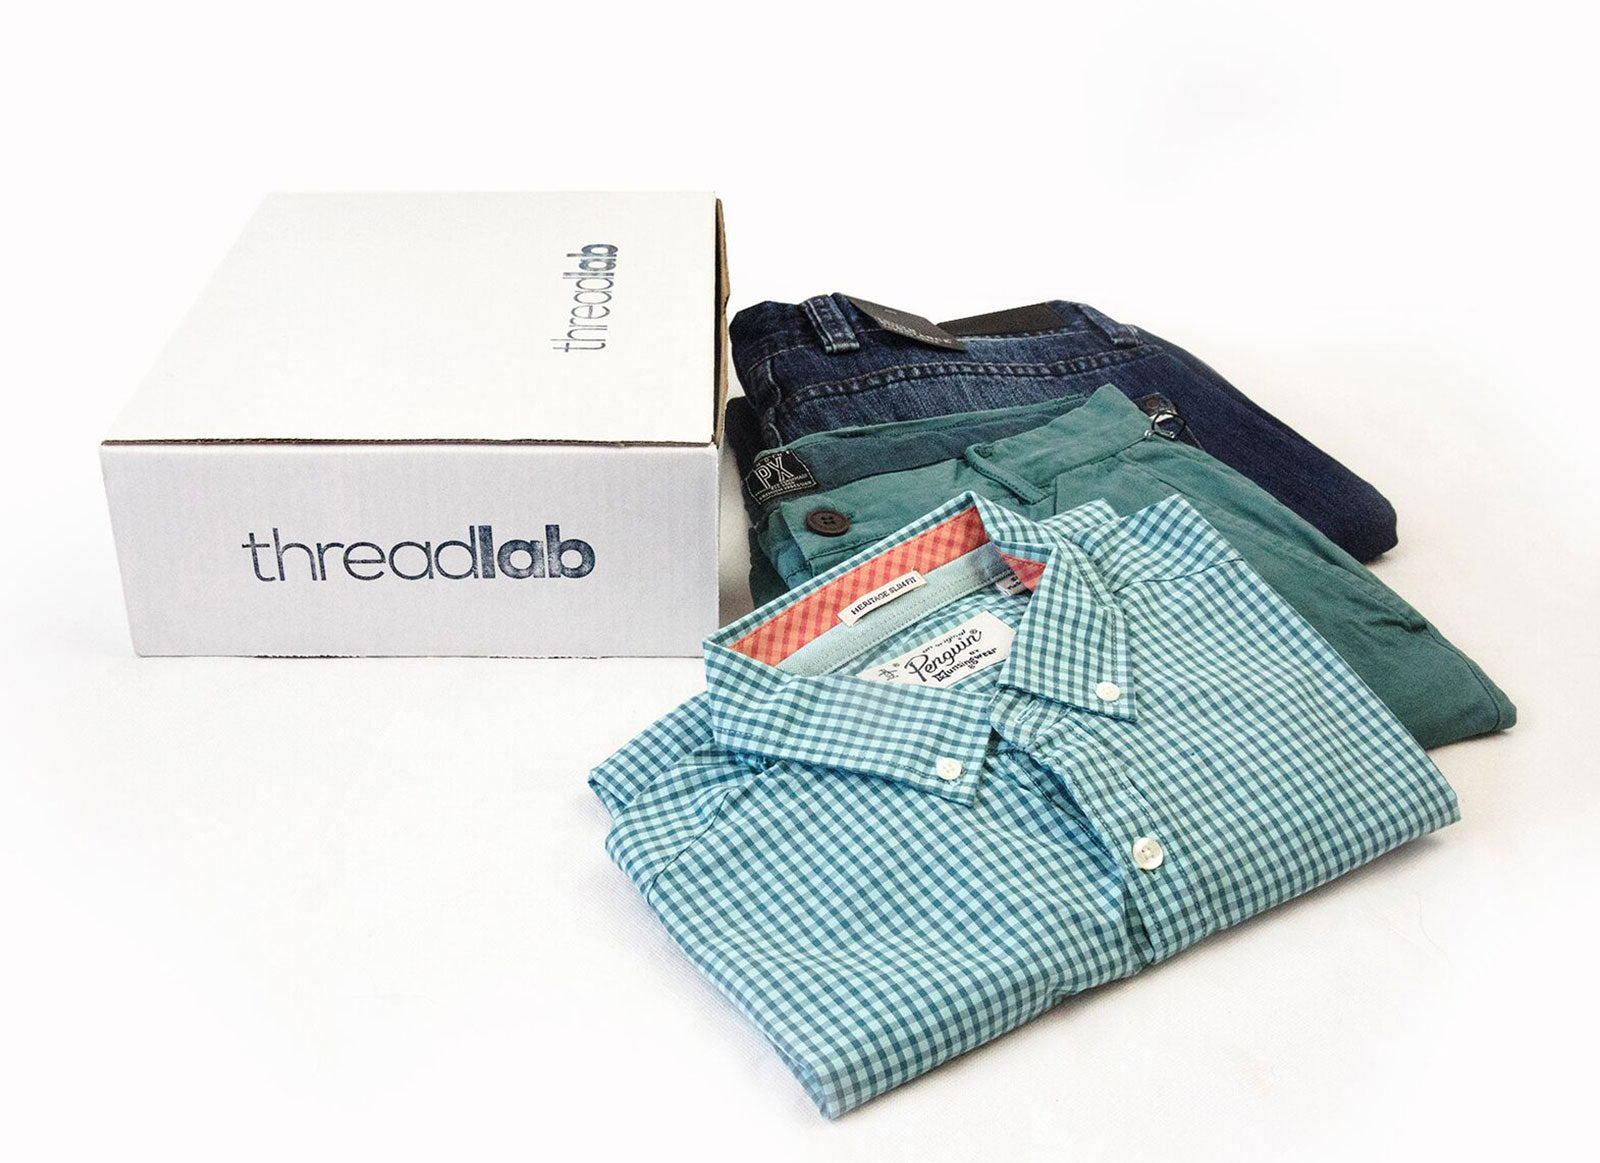 ThreadLab VIP Program